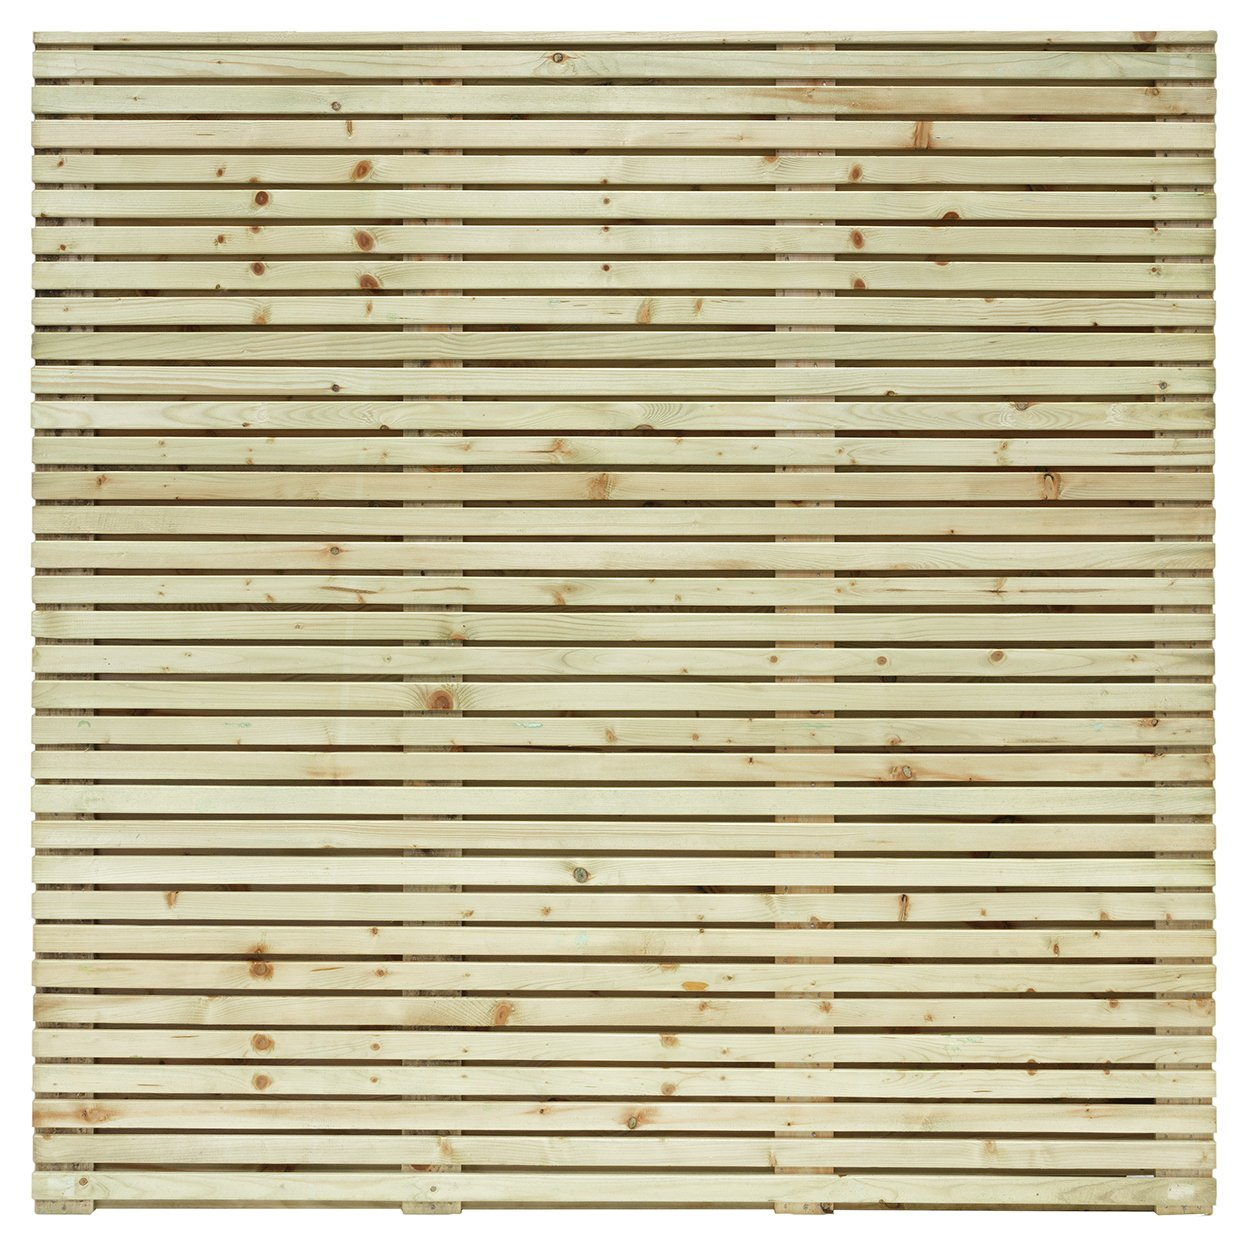 Grange Fencing 1.8m Contemporary Fence Panel - Pack of 3. lowest price